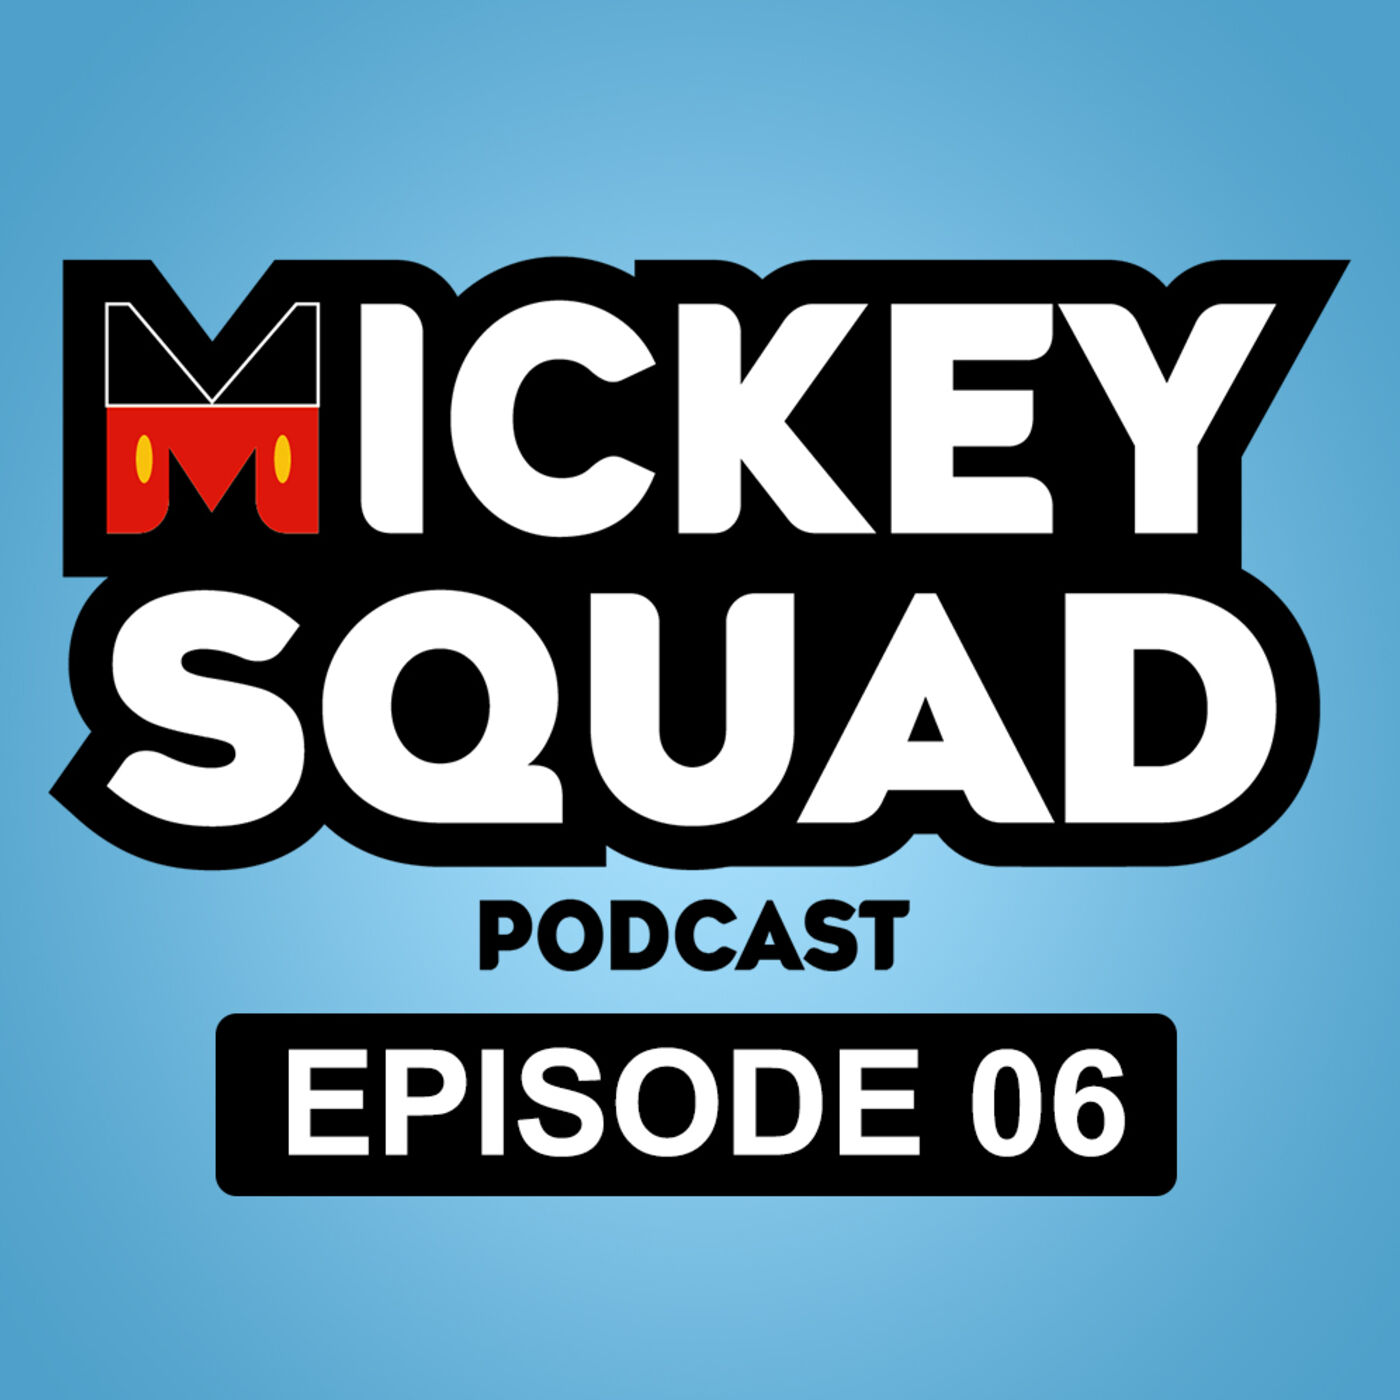 Episode 06 - Disneyland Survival Guide